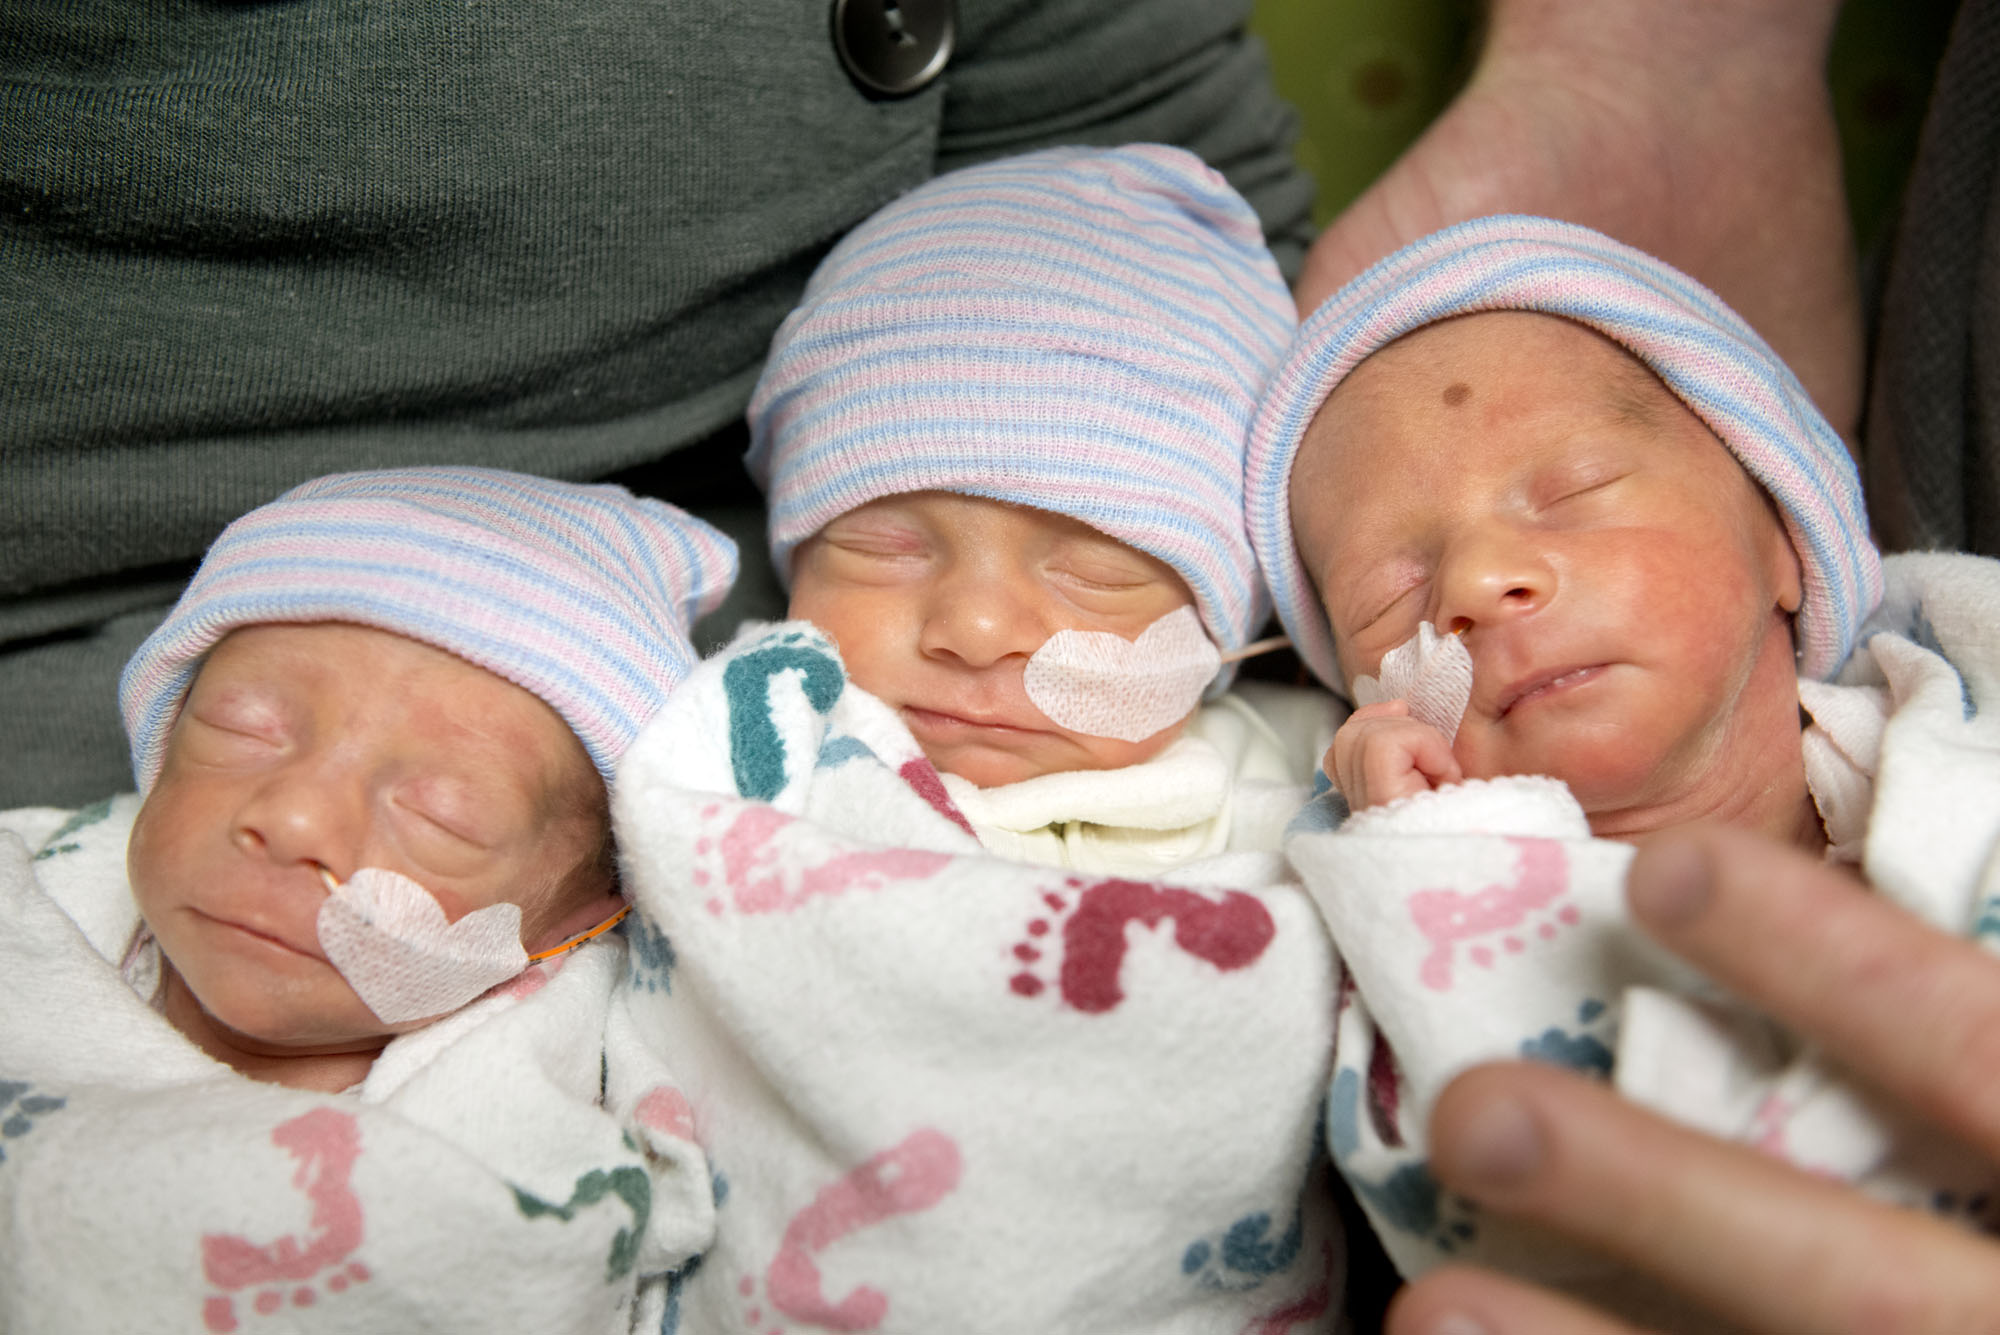 fertility treatments boost chances of having triplets While having twins (or more multiples) is still more chance than science, your chances of having twins may increase if: you use fertility drugs or treatments advancements in fertility drugs and treatments are probably the two reasons most responsible for the increase in twins, triplets, quads and higher multiple births.